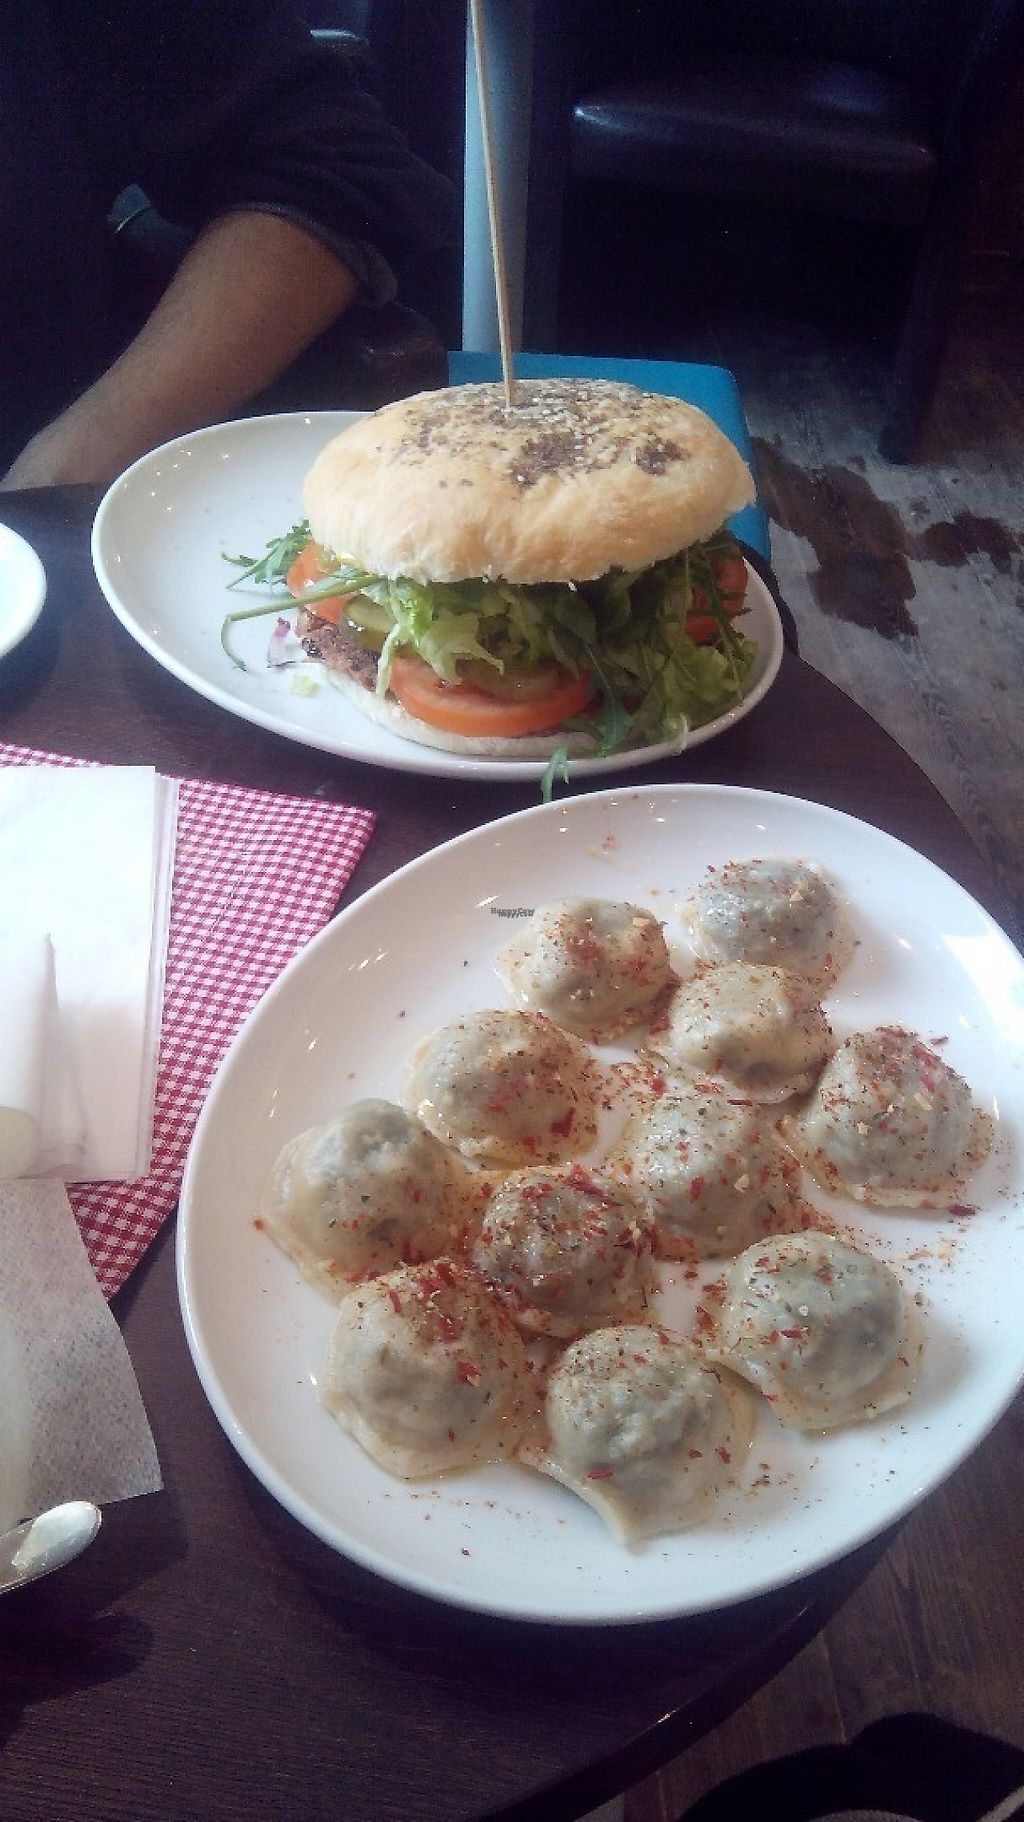 """Photo of Mountain Bar  by <a href=""""/members/profile/bdzsfi"""">bdzsfi</a> <br/>Burger and Spinach pierogi <br/> February 2, 2017  - <a href='/contact/abuse/image/67678/221369'>Report</a>"""